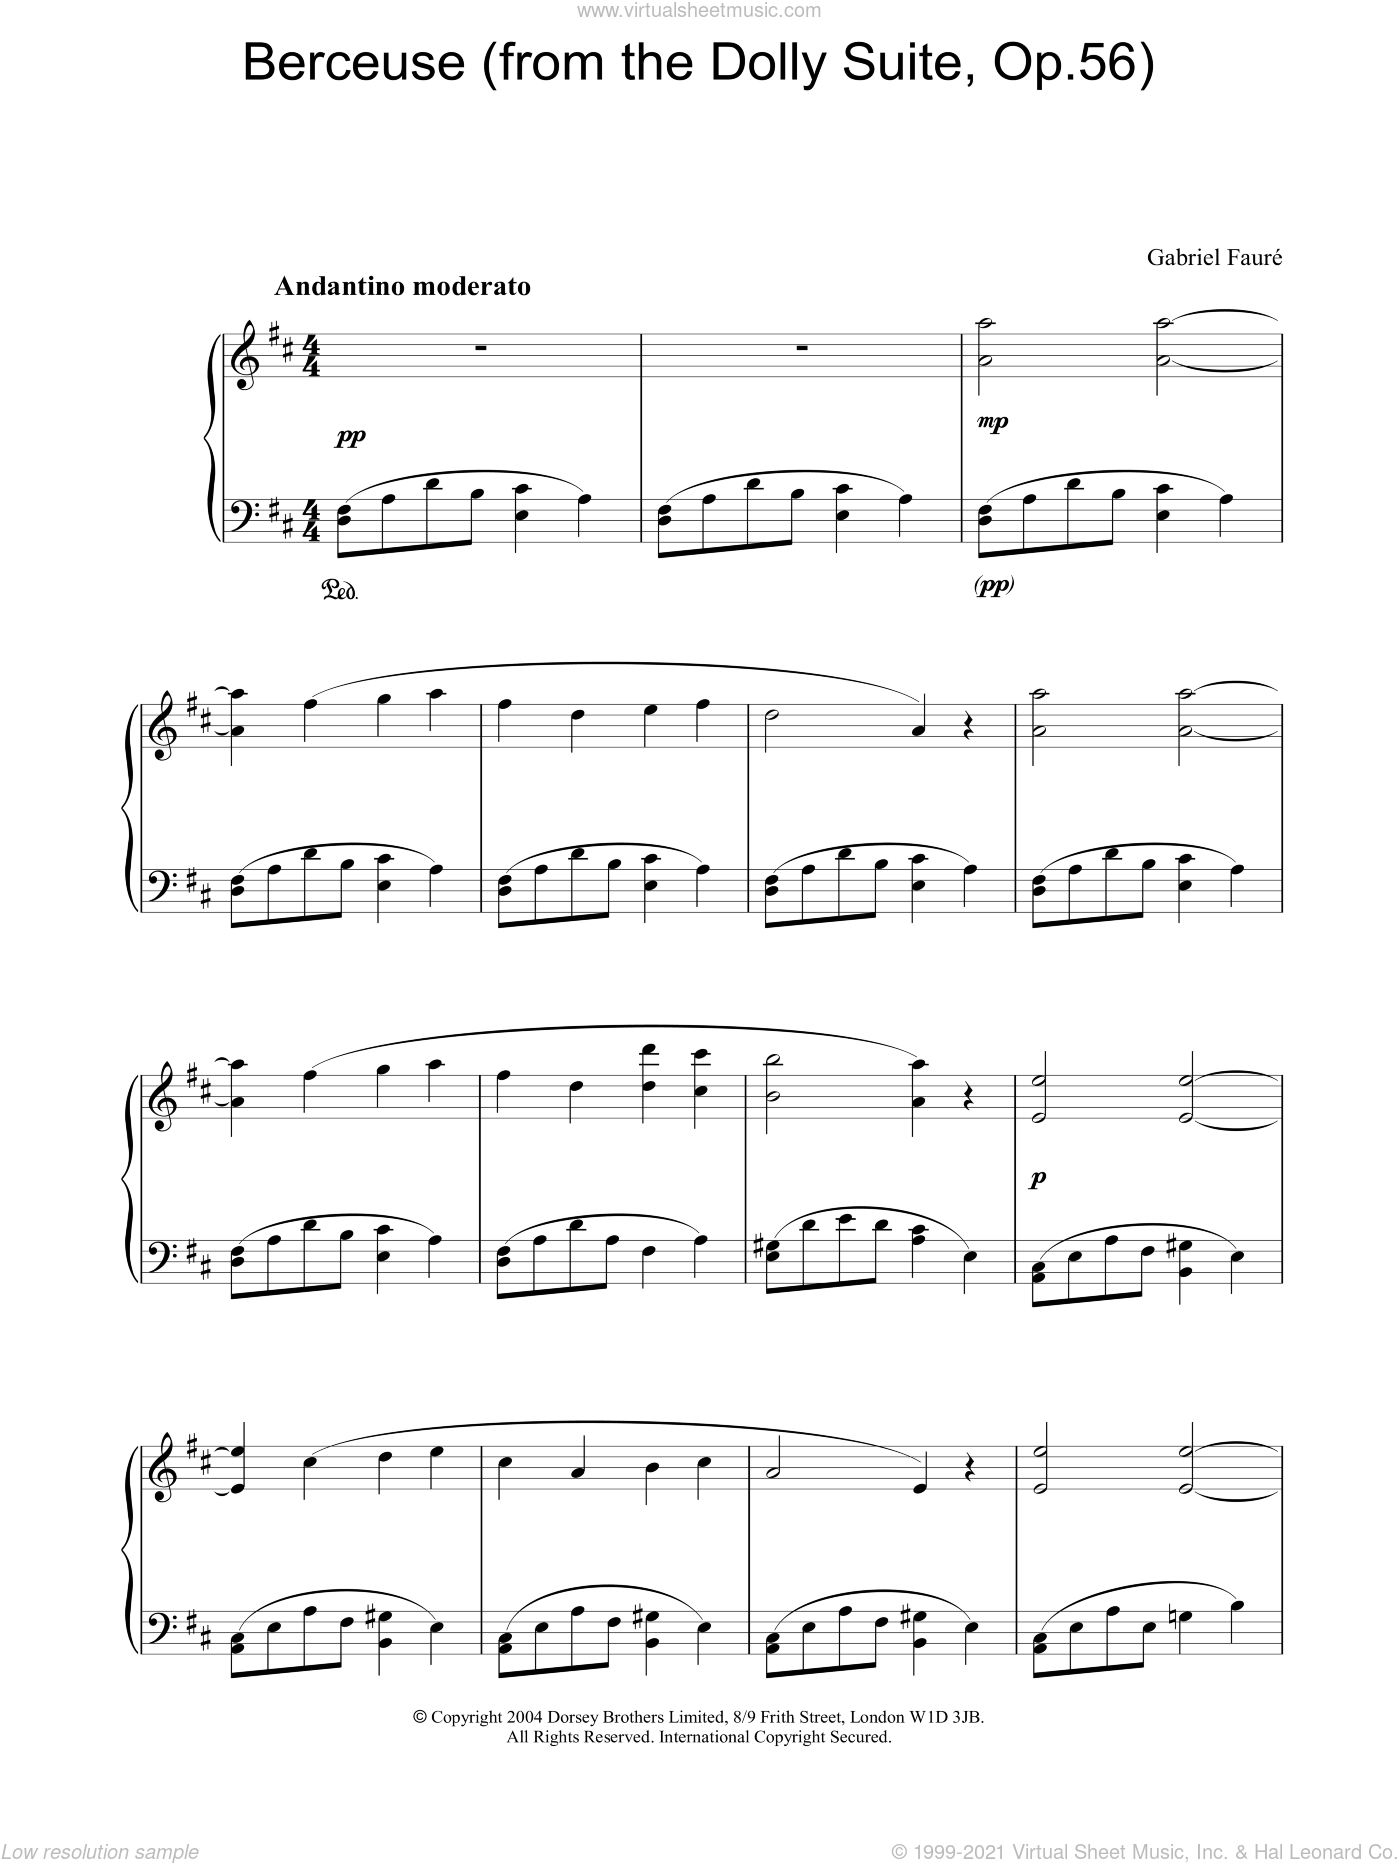 Berceuse (from the Dolly Suite, Op.56) sheet music for piano solo by Gabriel Faure